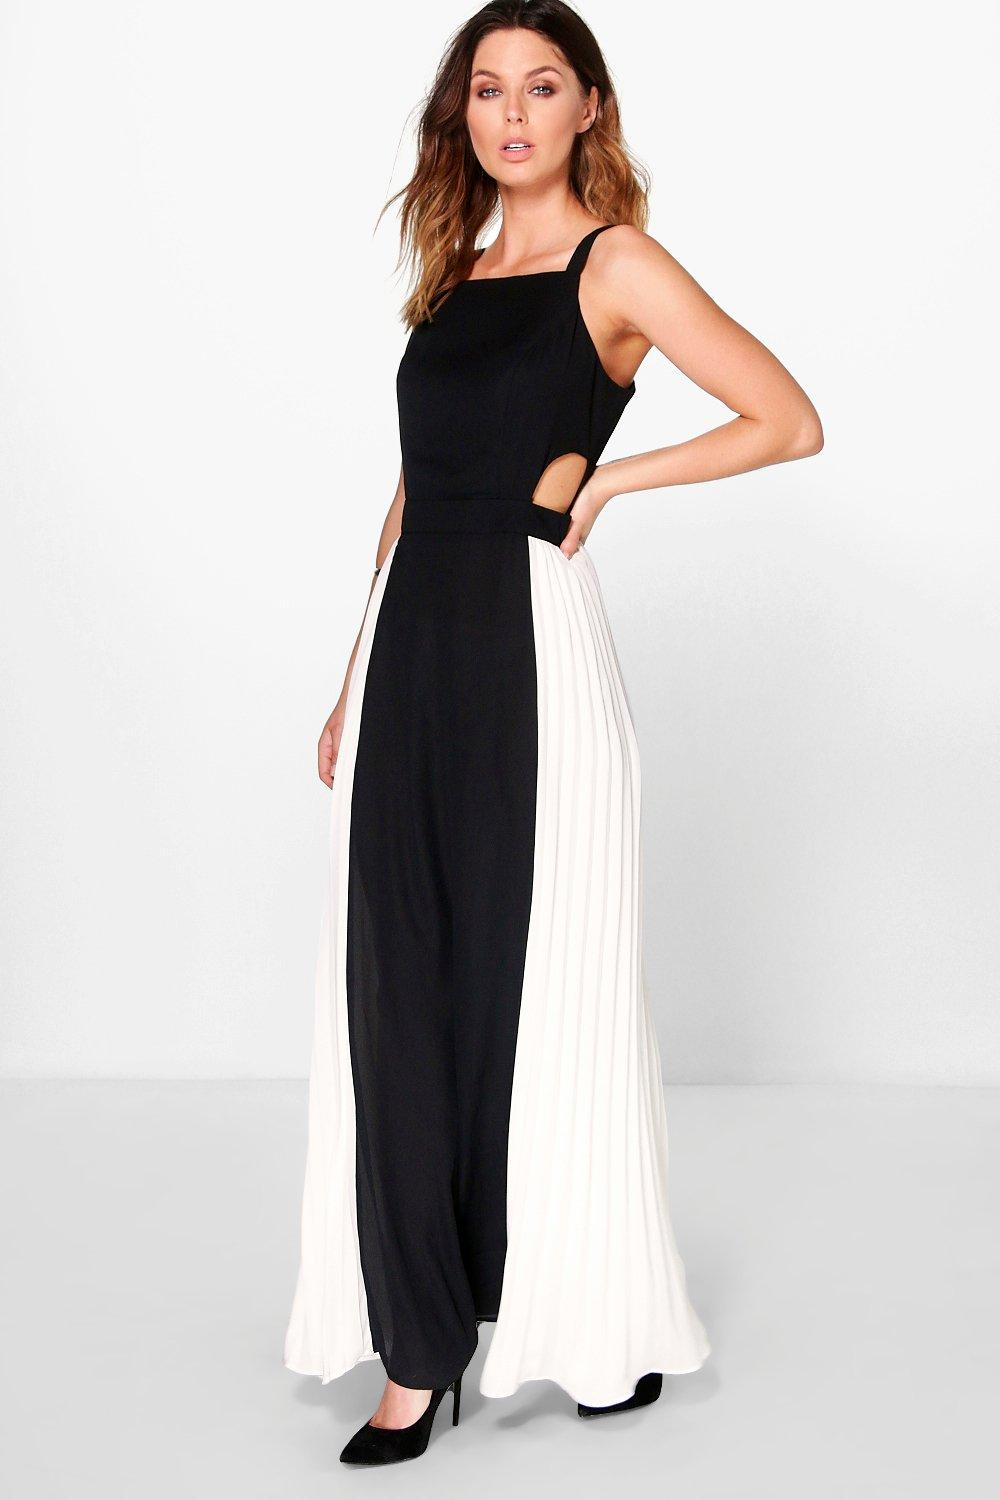 546b83b1dc40 Womens Black Boutique Tiao Pleated Colour Block Maxi Dress. Hover to zoom